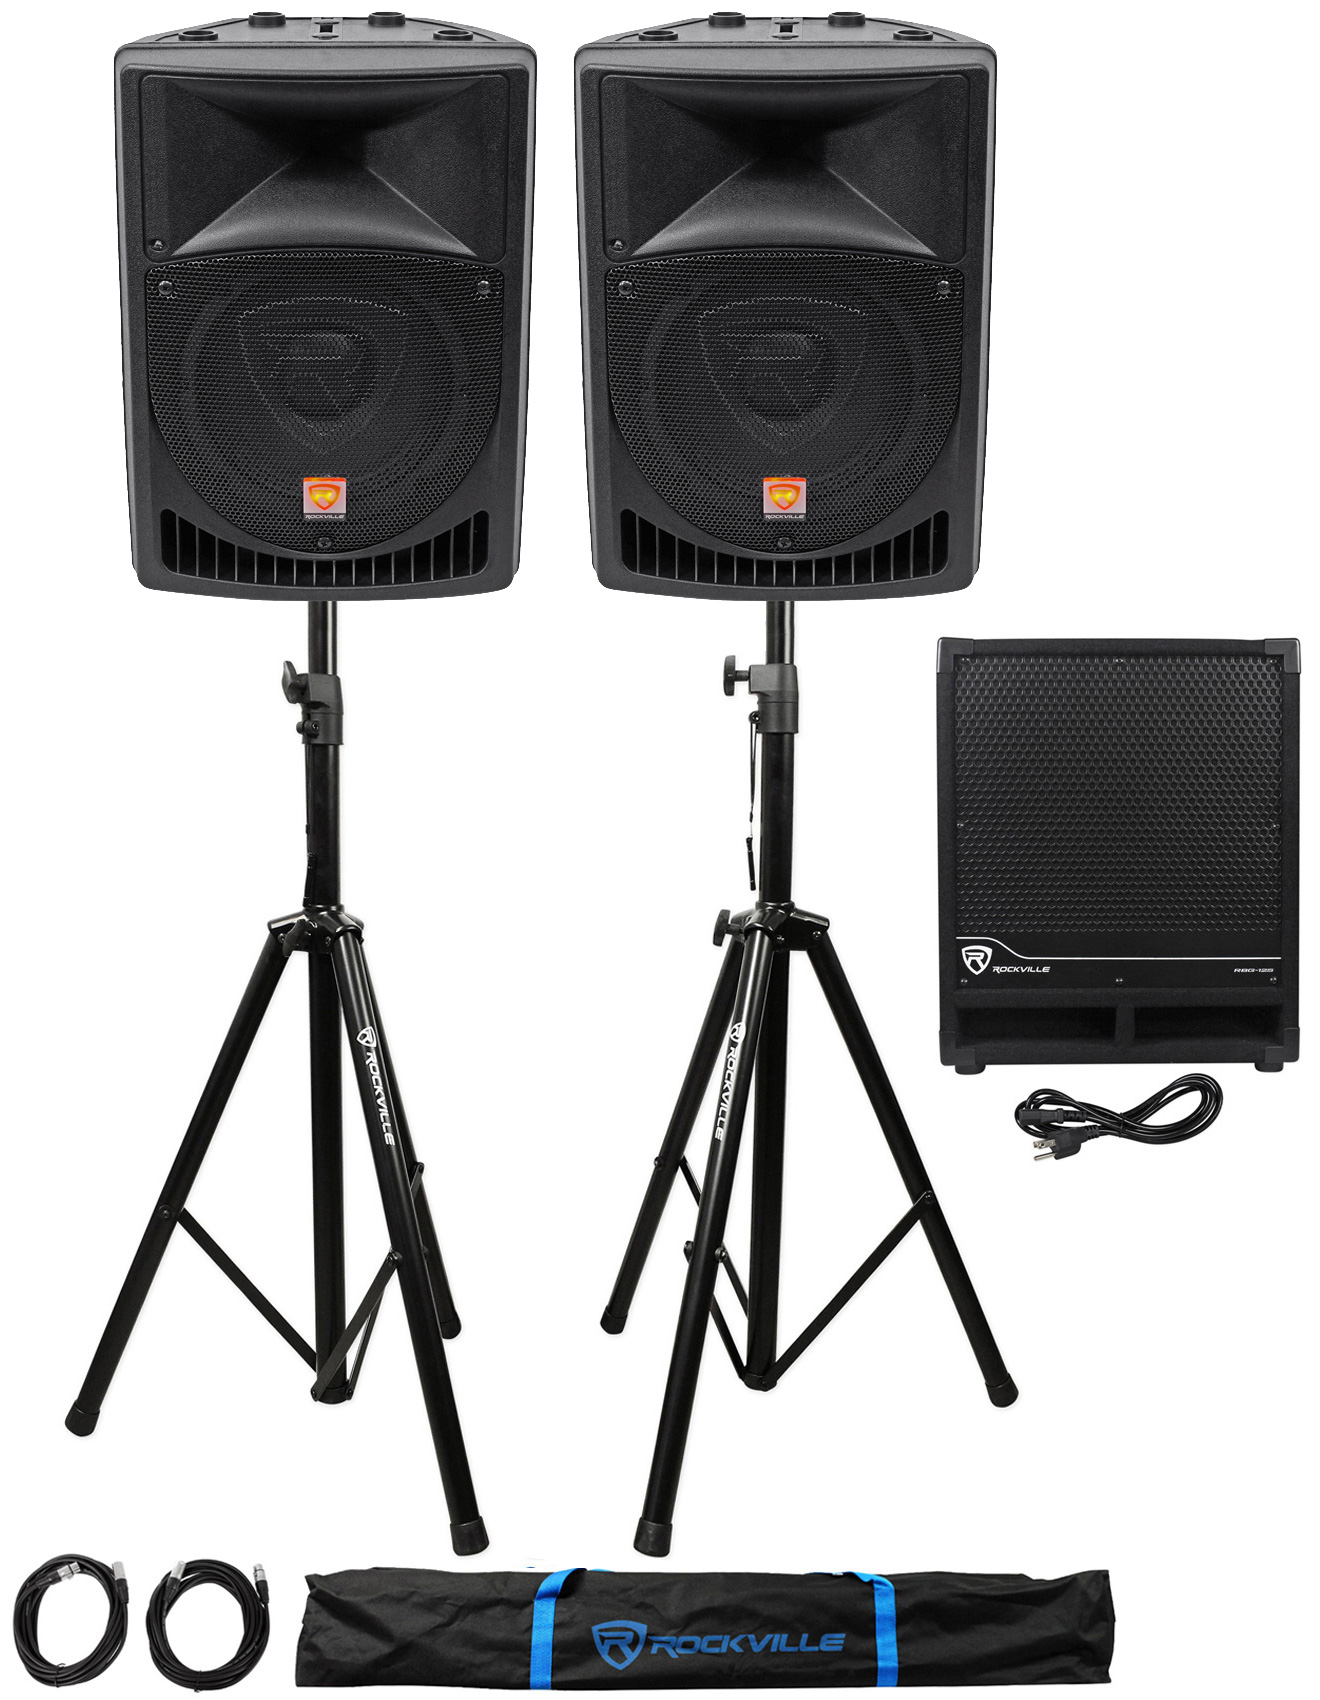 "(2) Rockville RPG8 8"" Powered 400W DJ PA Speakers+Active Sub+Stands+Cables+Bag by ROCKVILLE"